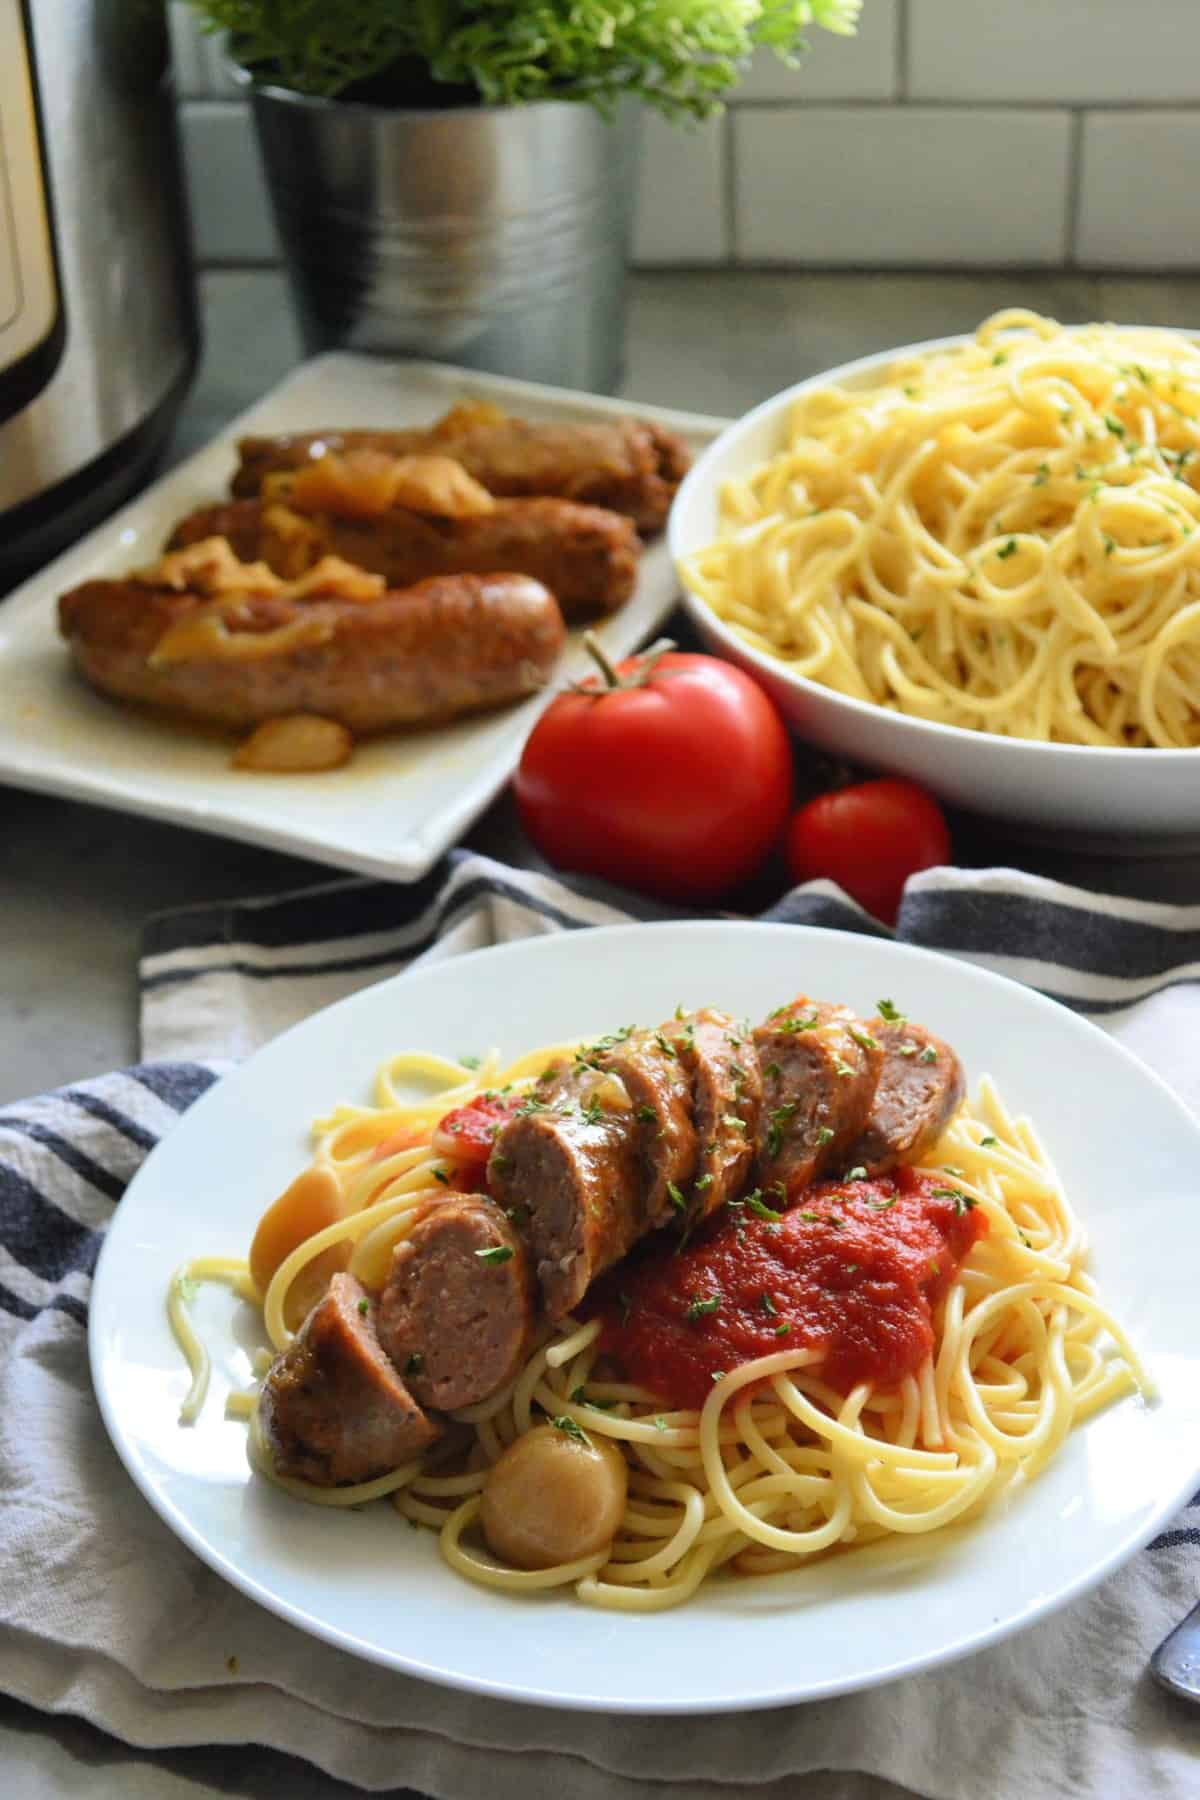 Italian sausage dinner with pasta and red sauce.